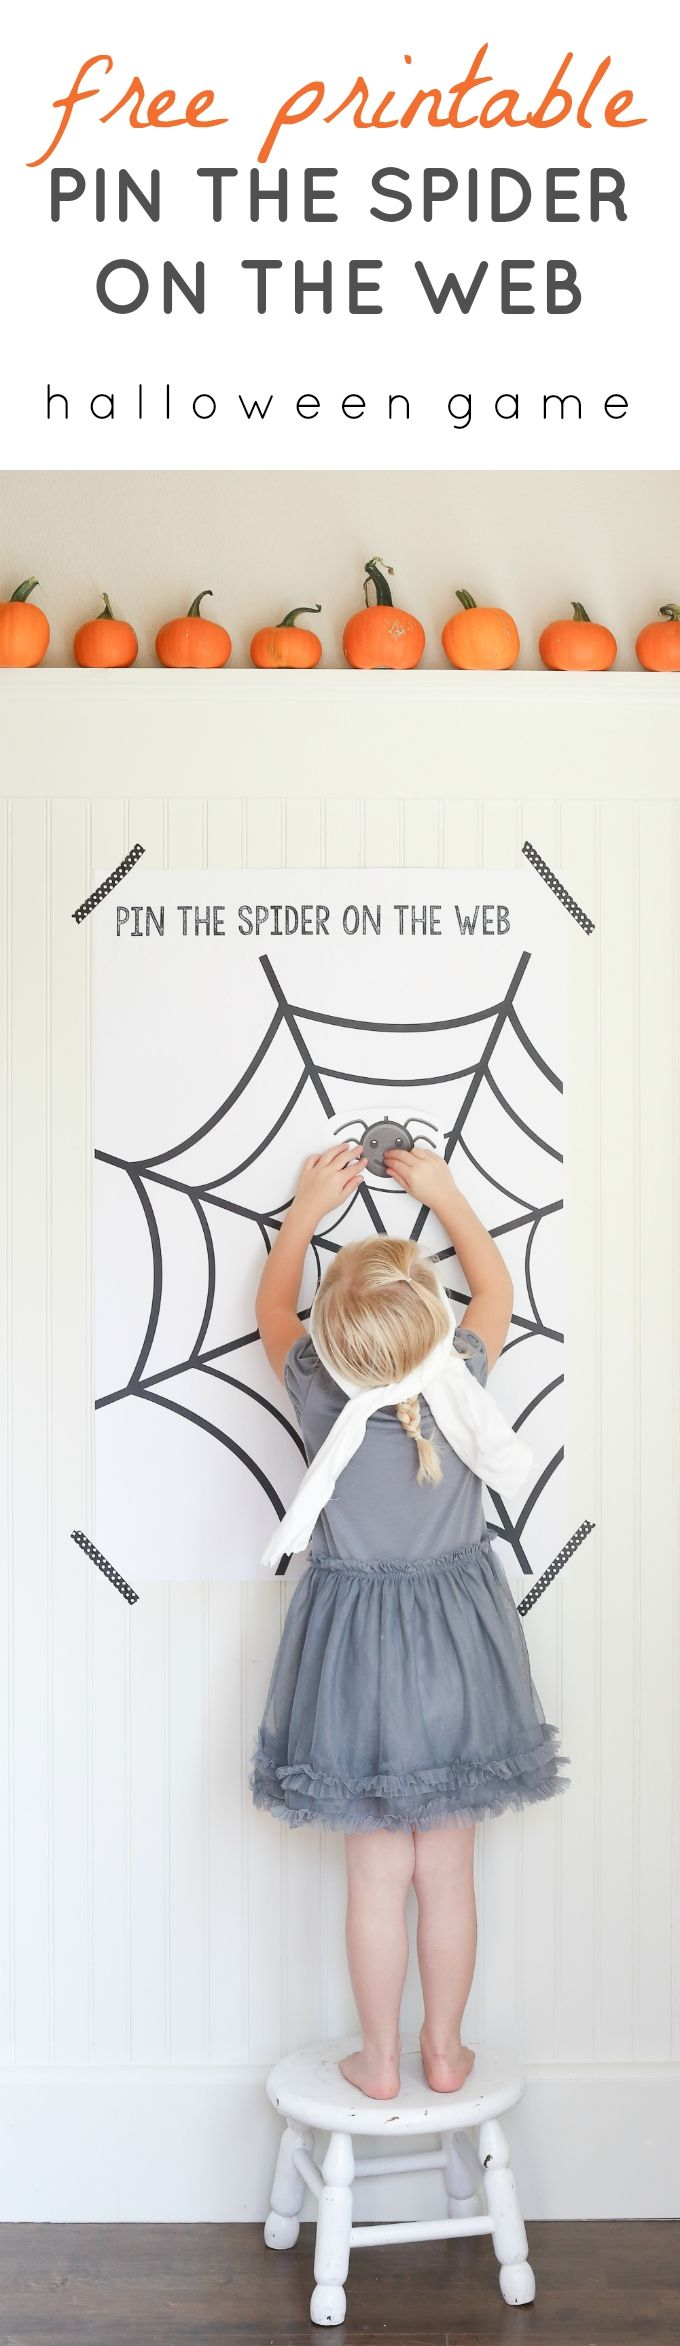 10 Hilarious Halloween Party Games Kids and Adults will Love ...